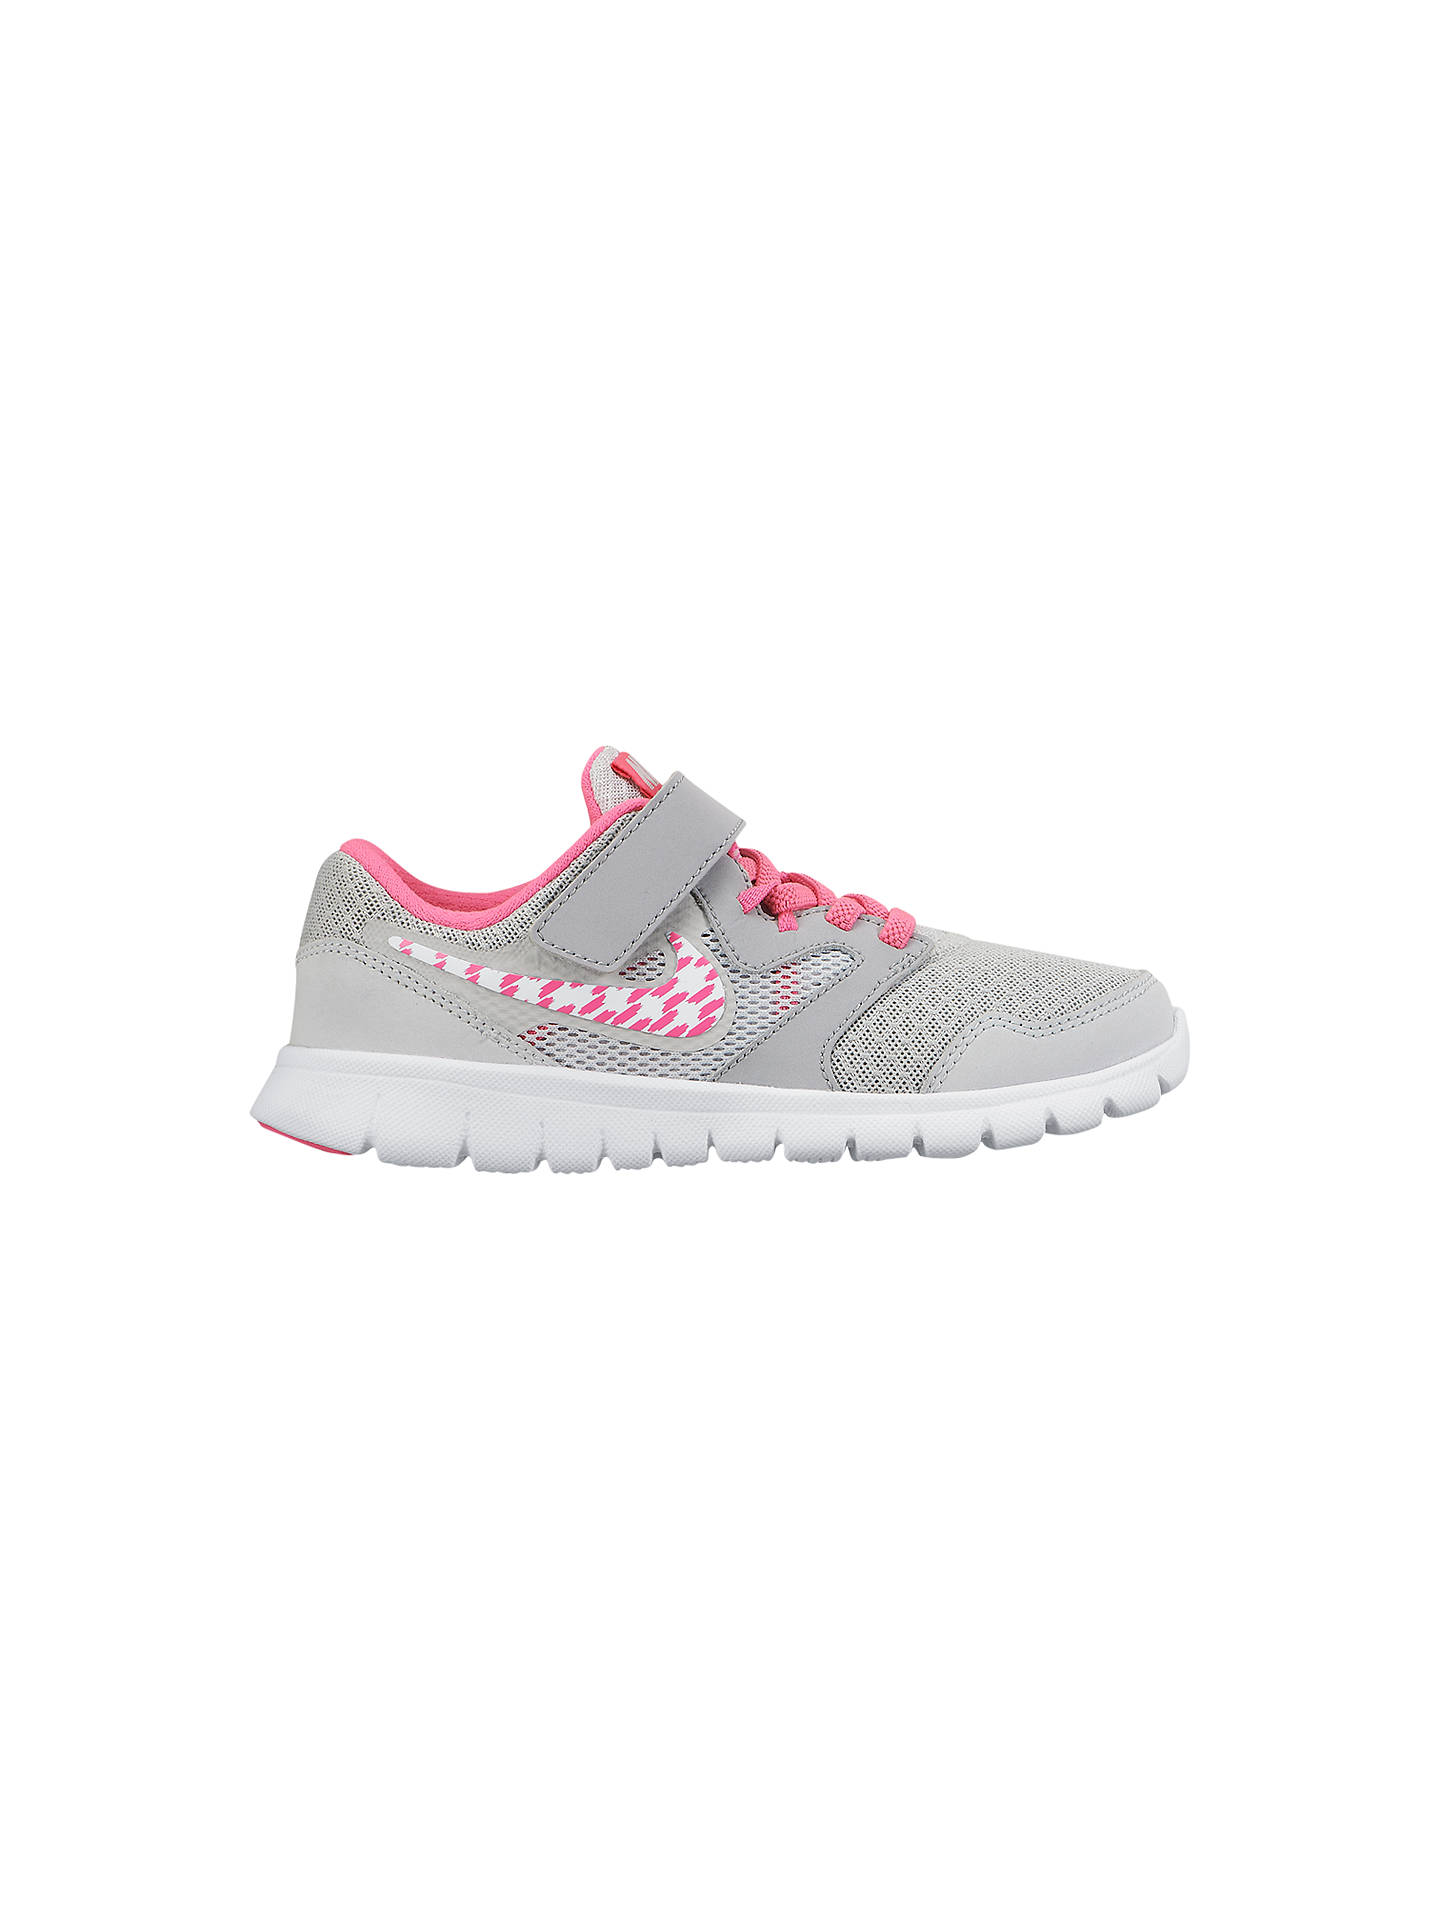 Nike Children's Flex Experience 3 Trainers, GreyPink at